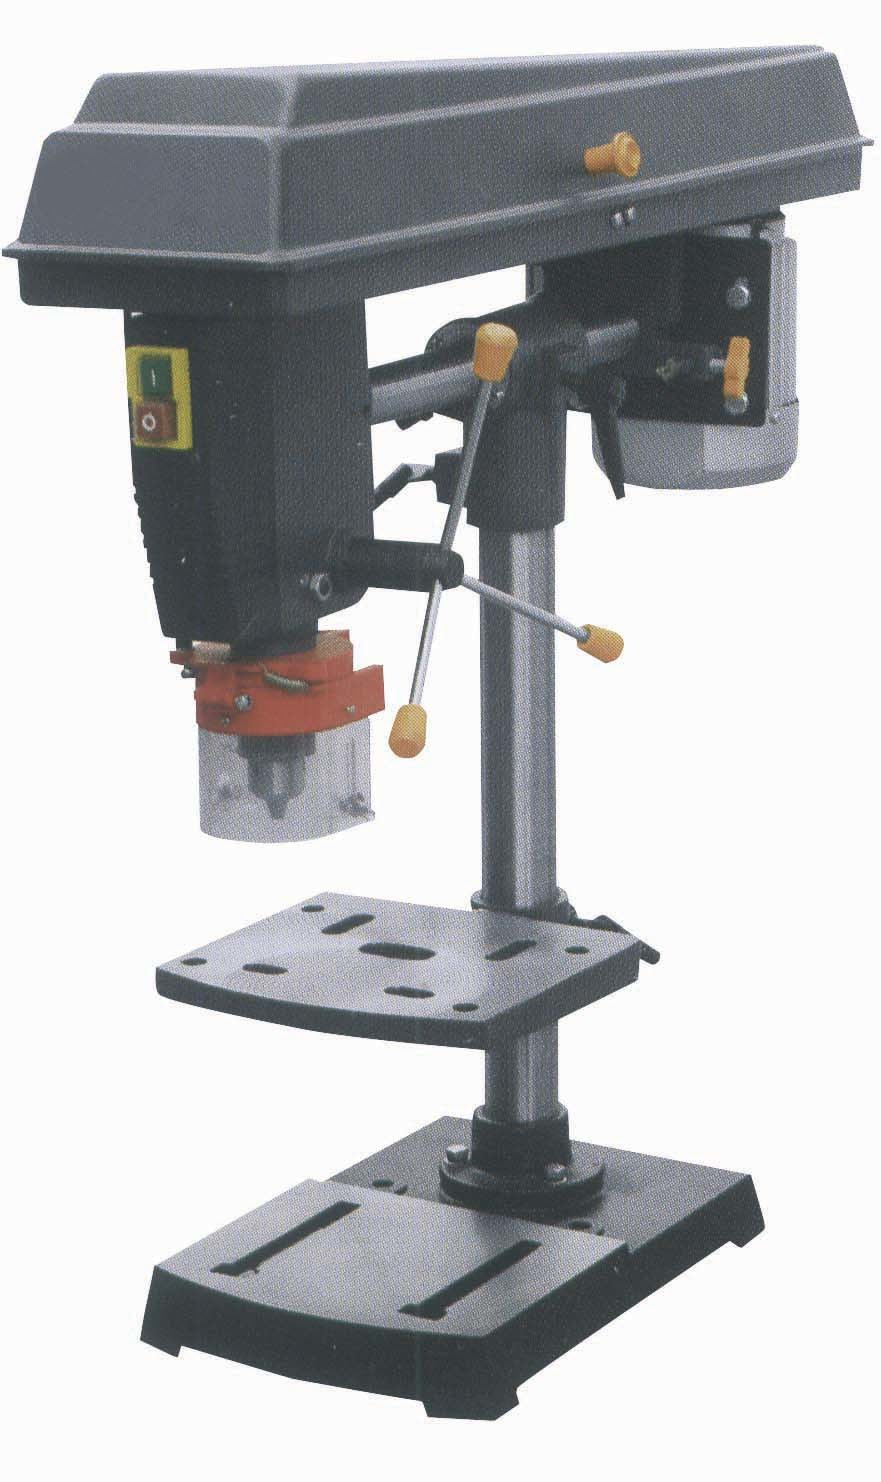 Permalink to fine woodworking bench top drill press